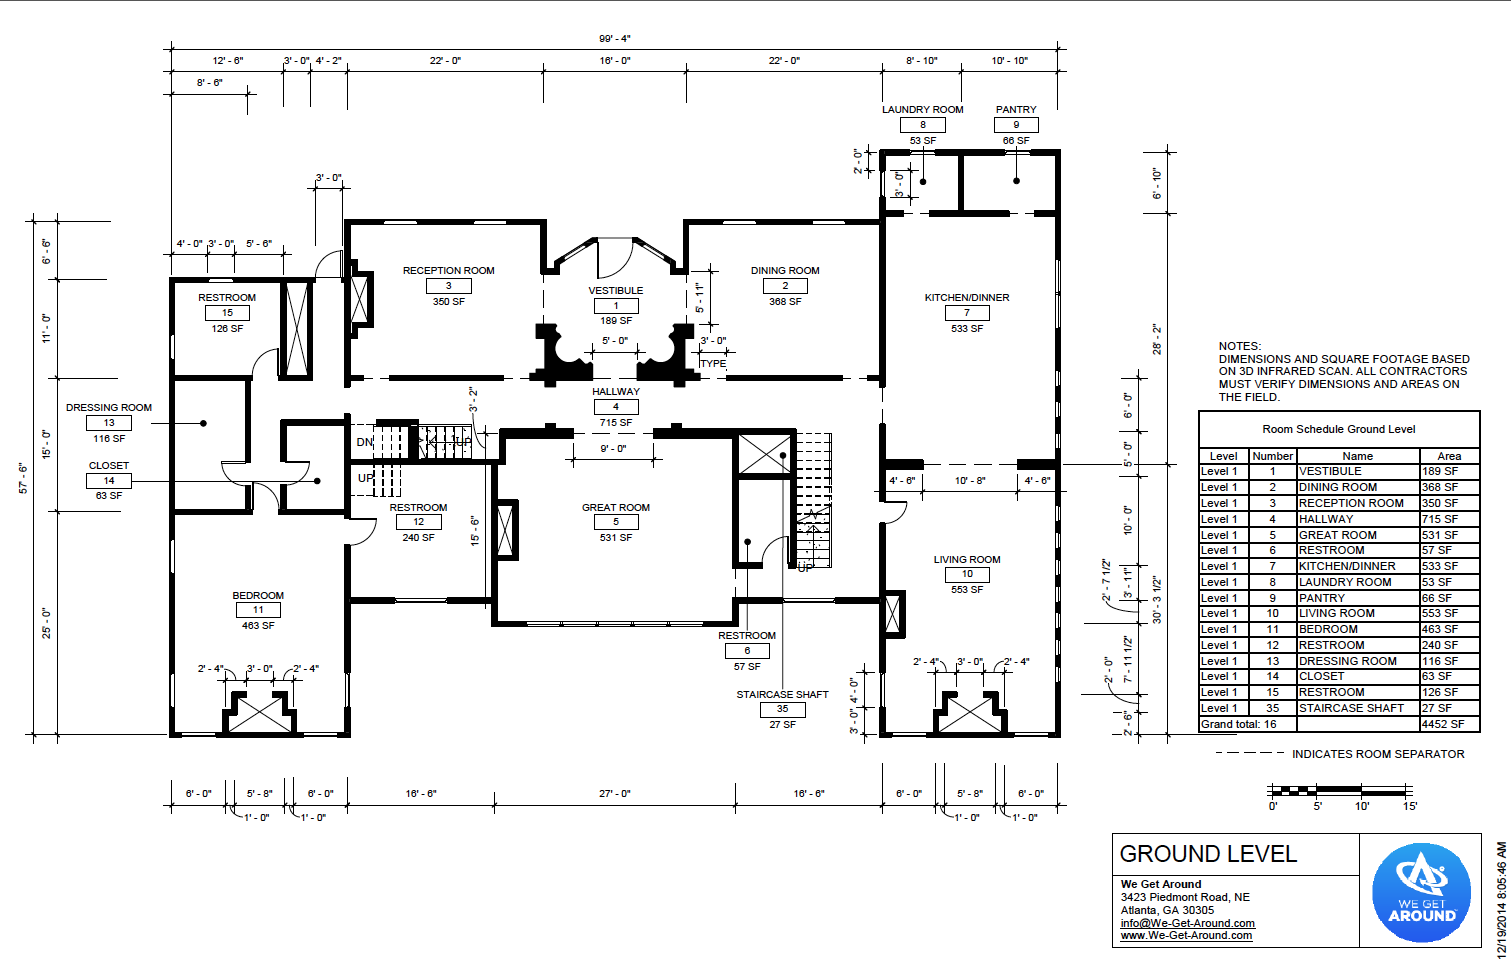 We Get Around a LUXURY HOME FloorMe Floor Plan - Sheet - A102 - GROUND LEVEL.png